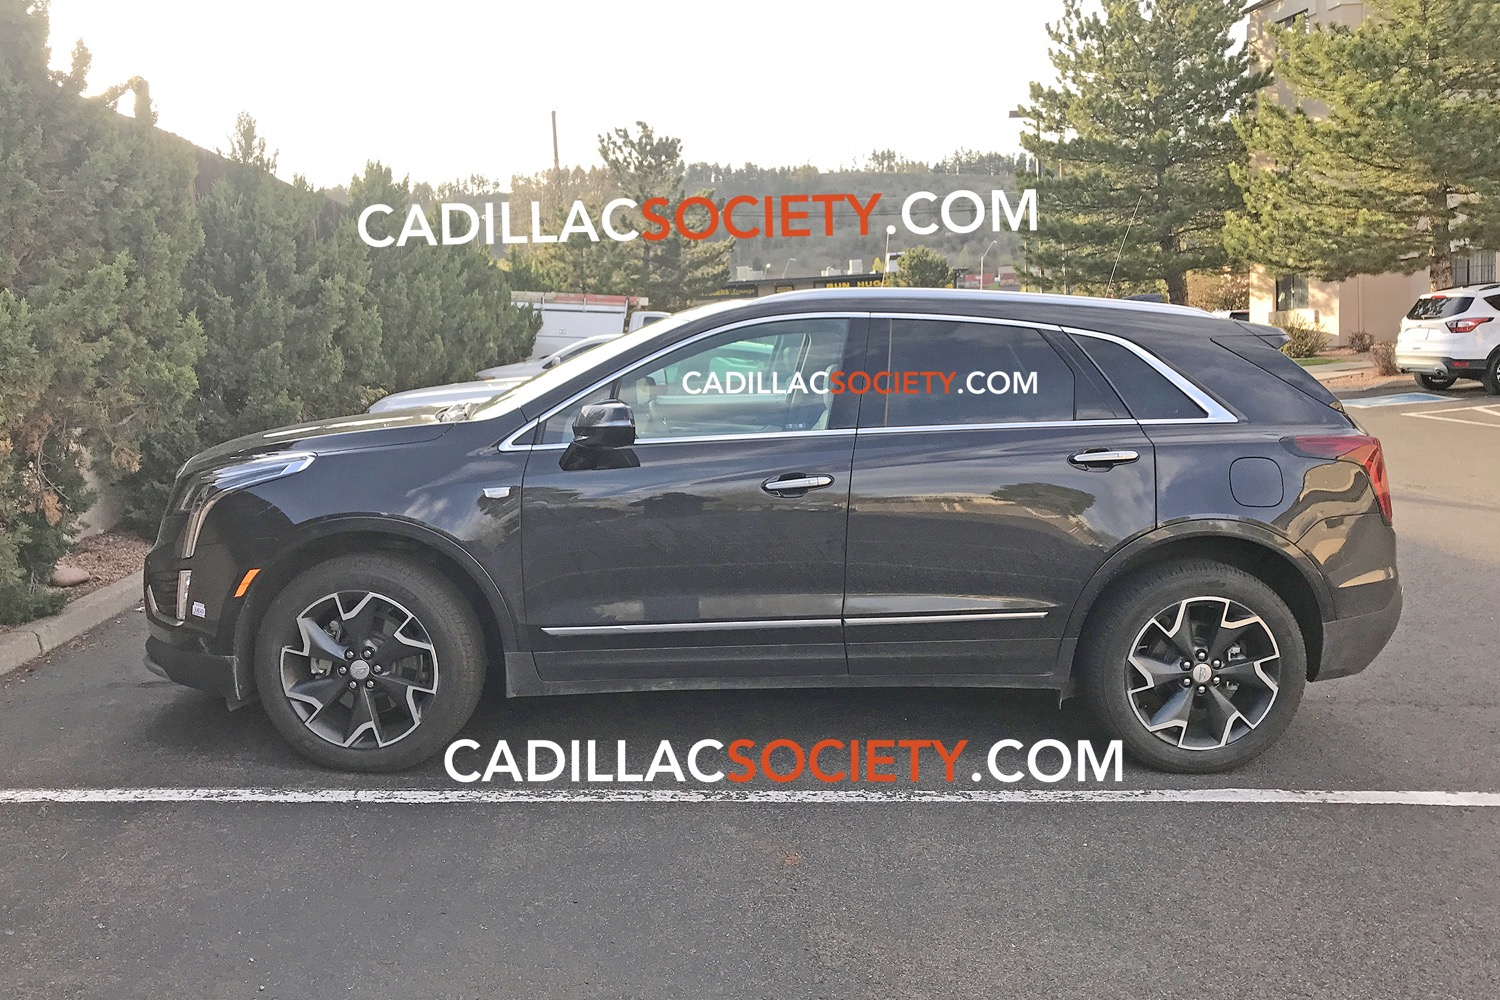 2020 Cadillac XT4 Changes, Hybrid, Price >> 2020 Cadillac XT4 Changes, Hybrid, Price | 2020 Upcoming ...